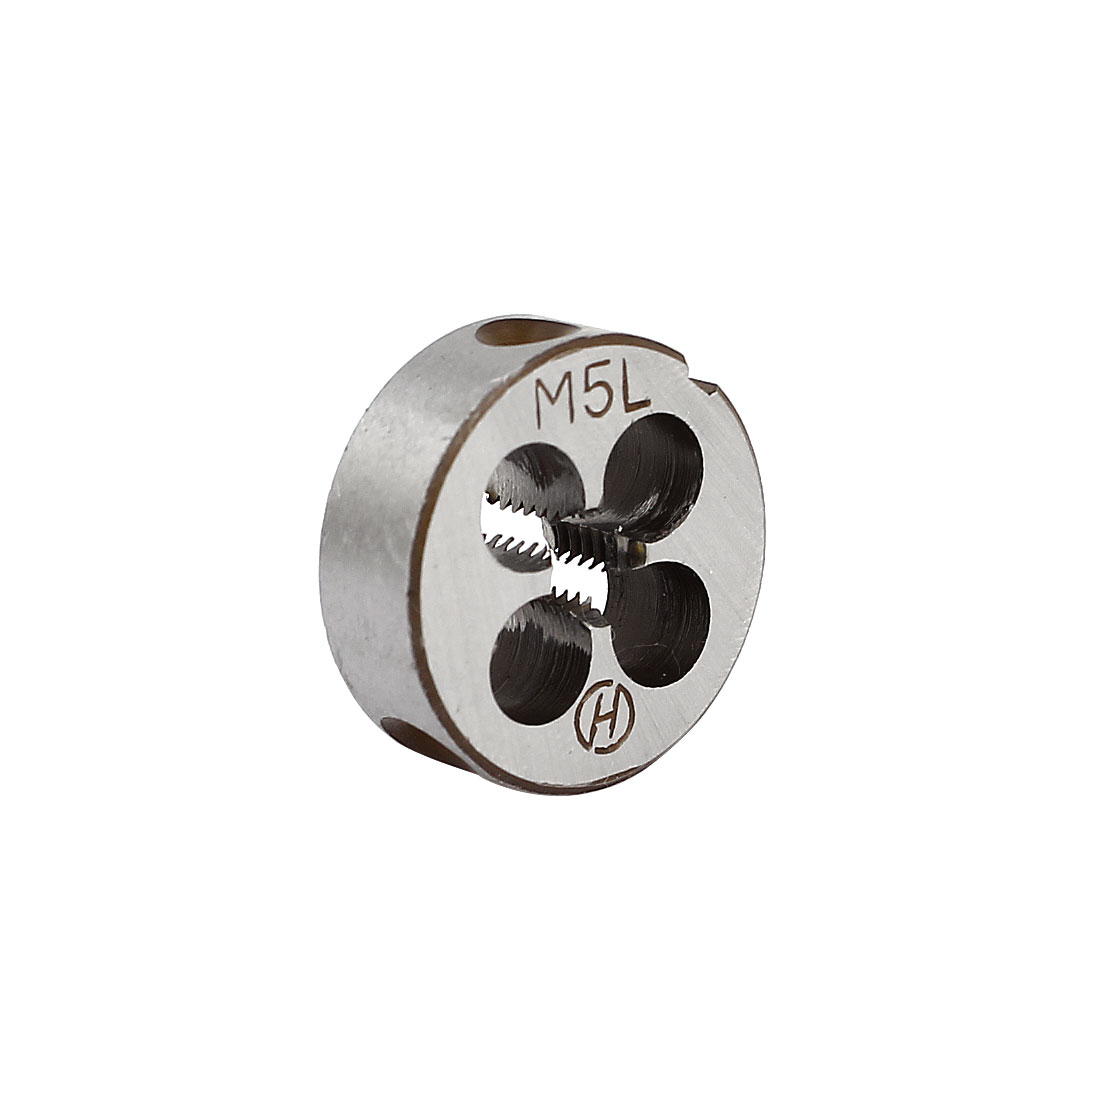 M5 Metric 20mm OD Dia Left Hand Round Threading Die Thread Cutting Tool